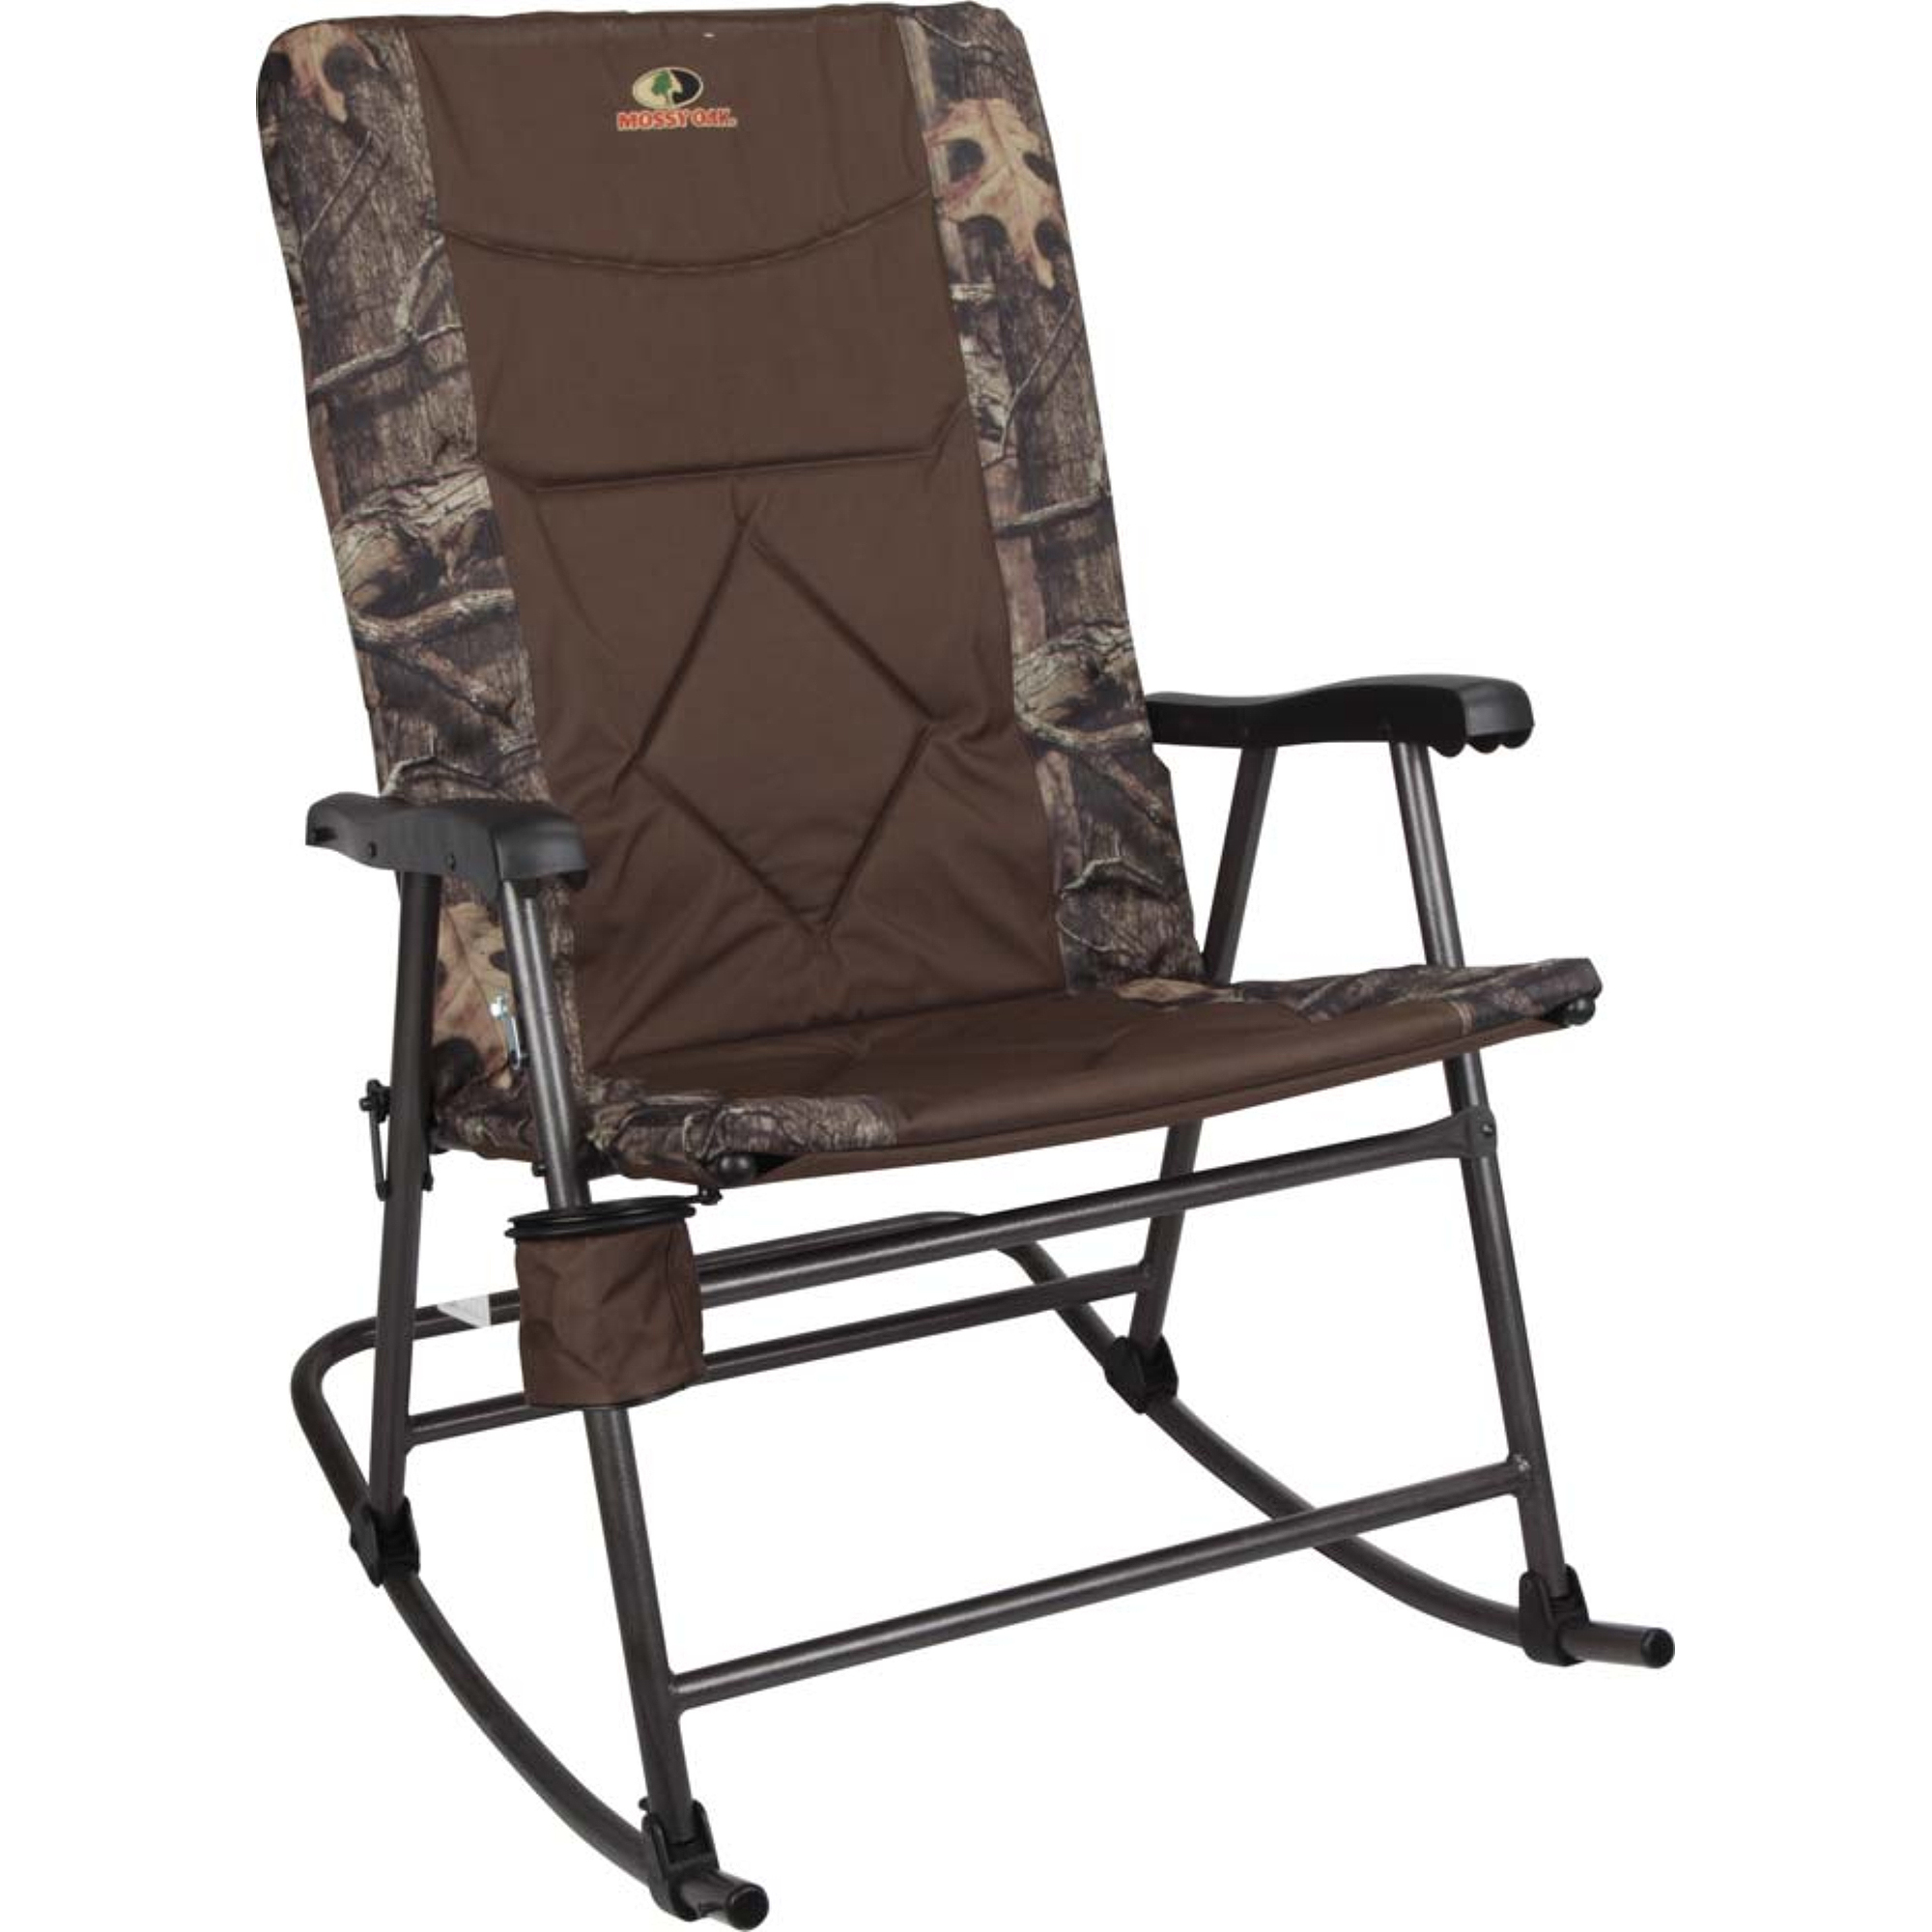 Mossy Oak Large Rocker Chair With Cup Holder